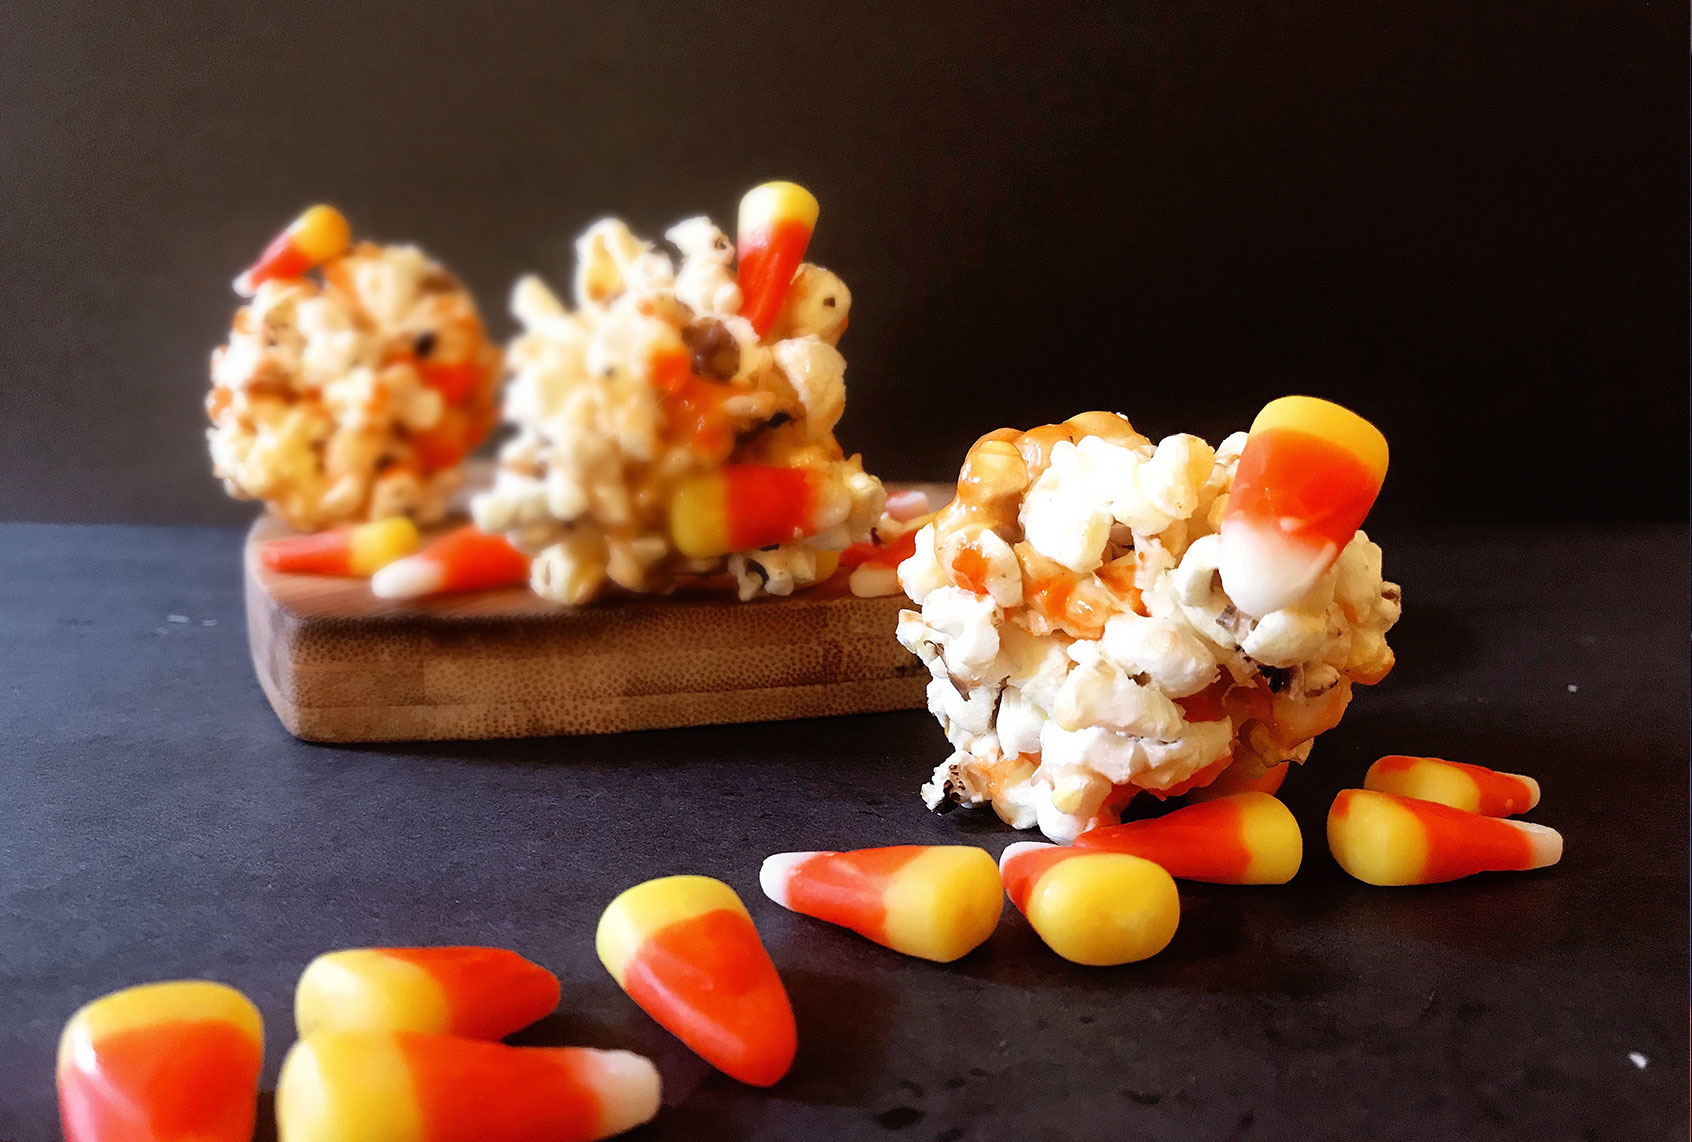 These salty-sweet popcorn balls will convert candy corn haters into true believers